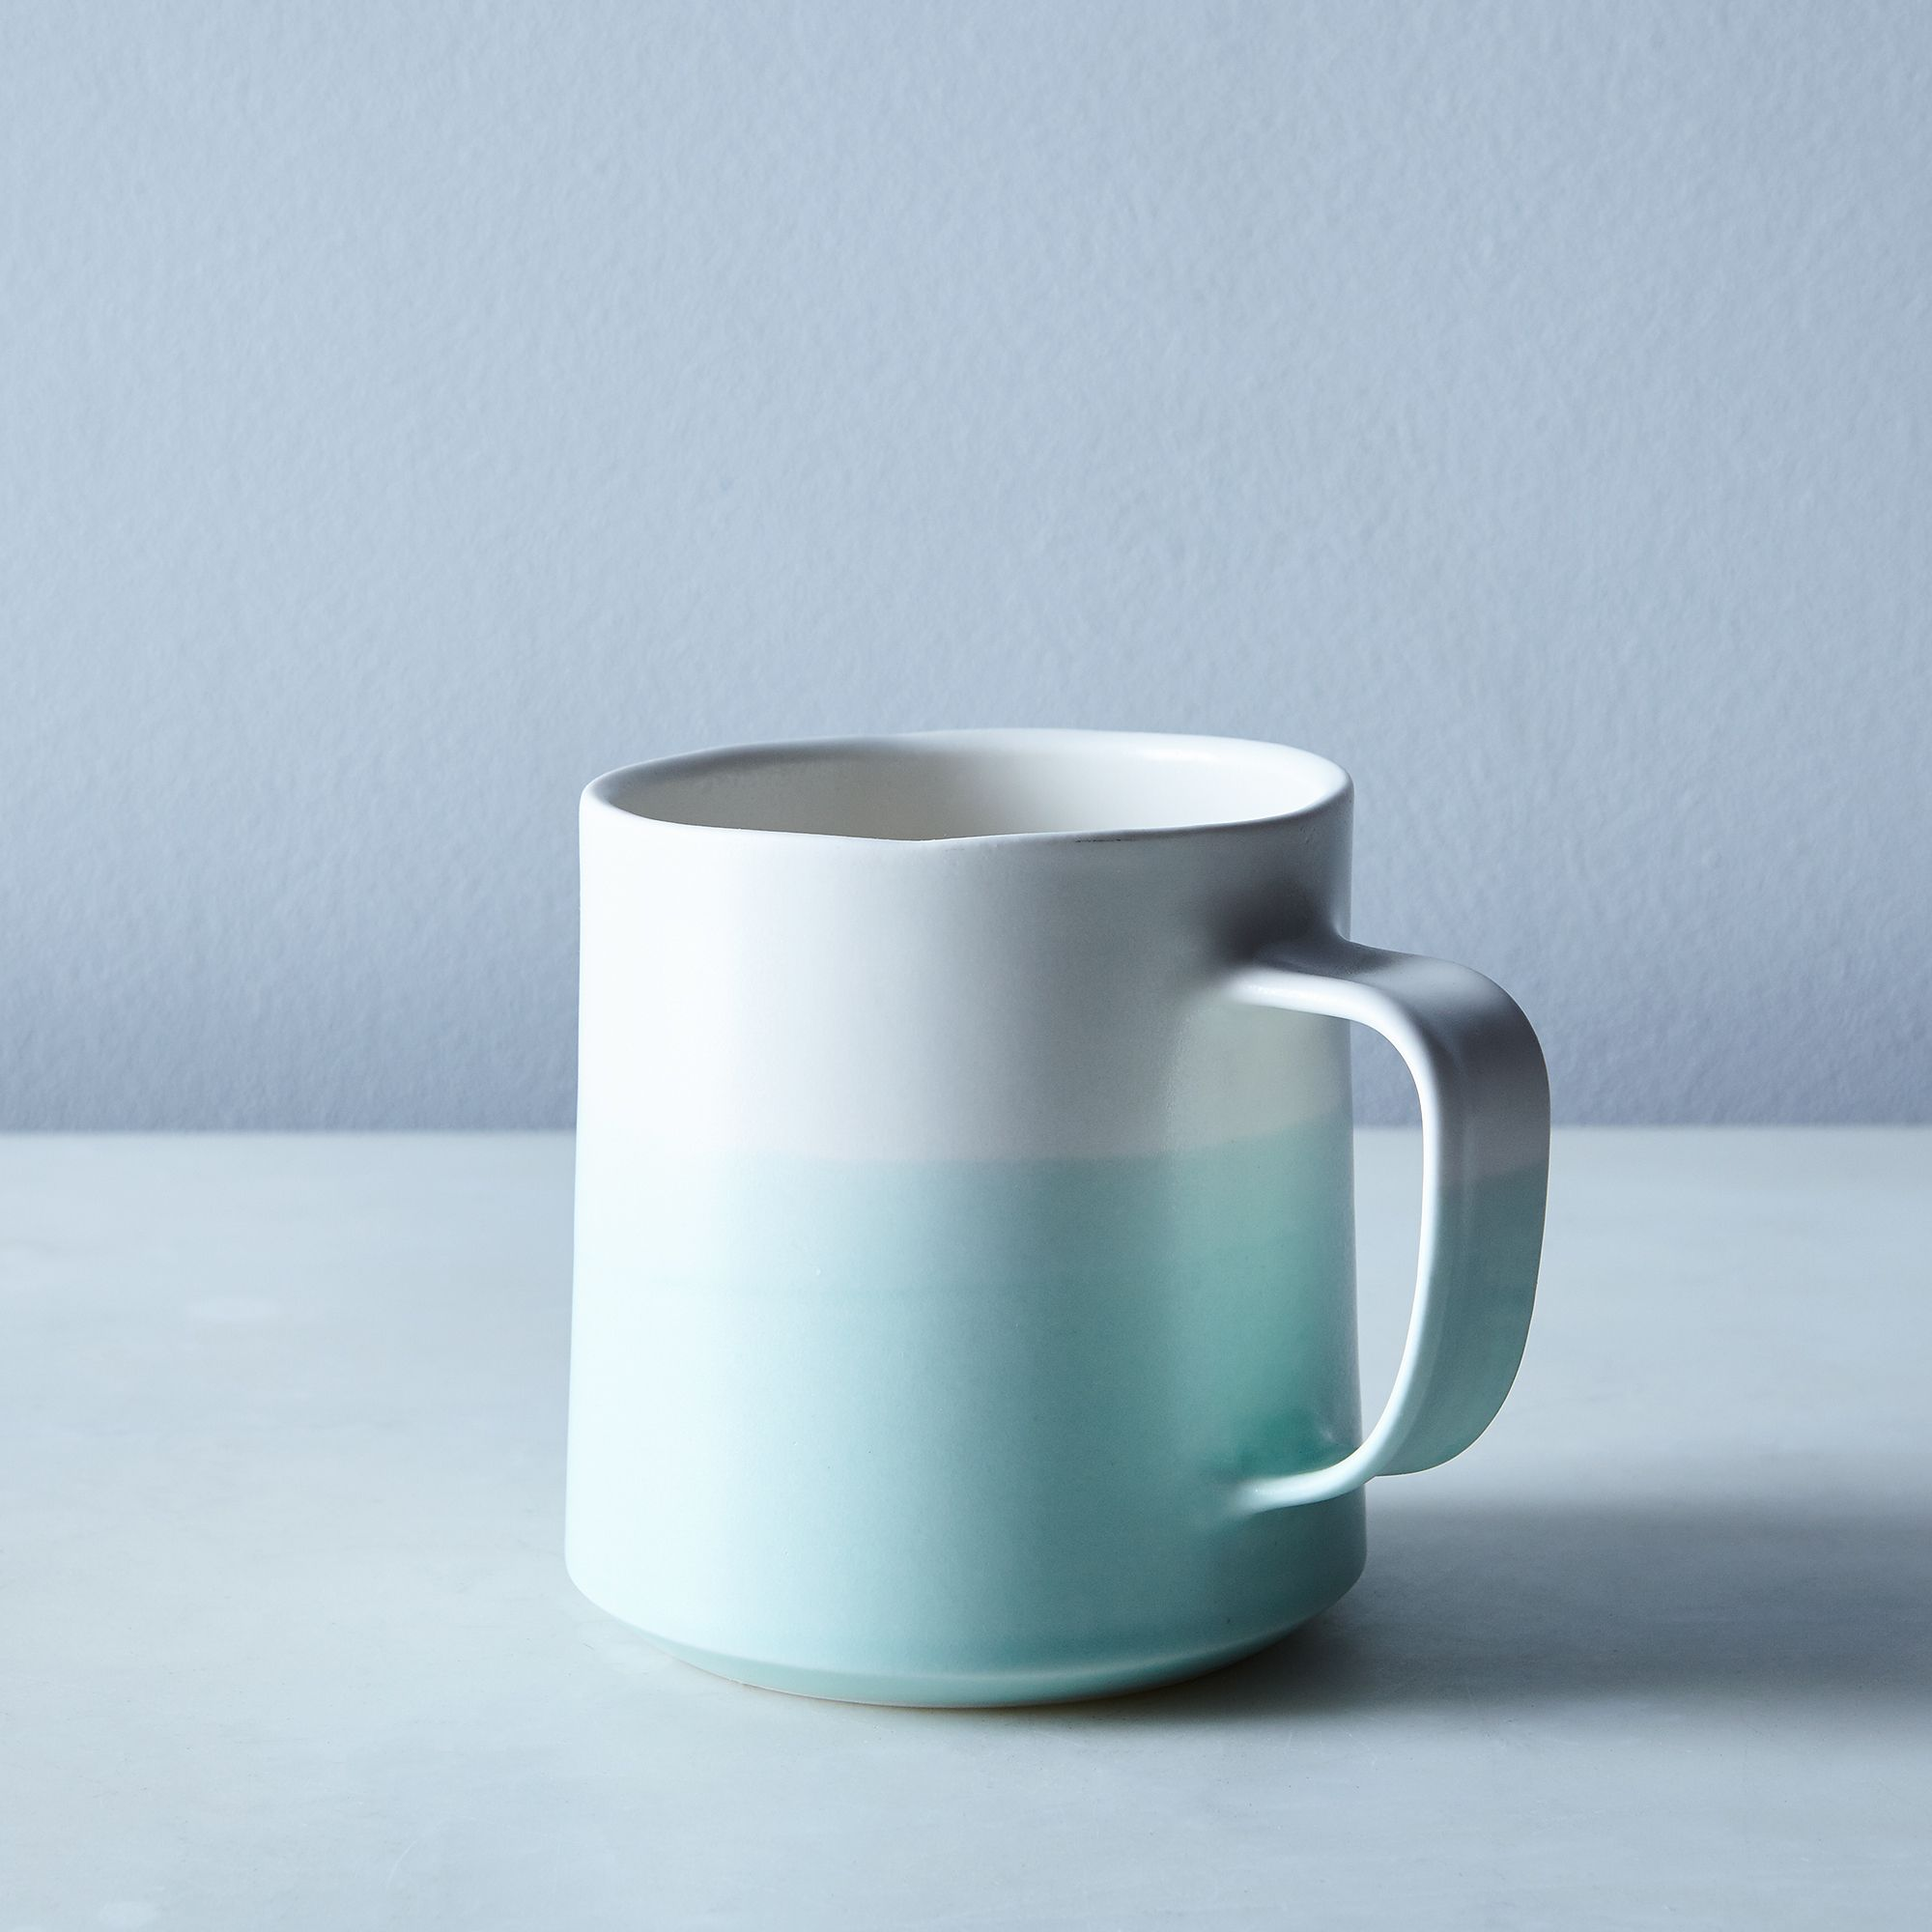 Cfe380f0 5e4a 4895 8a2d 468ce263210a  2017 0309 paper and clay danish mug gradient mint detail silo rocky luten 014